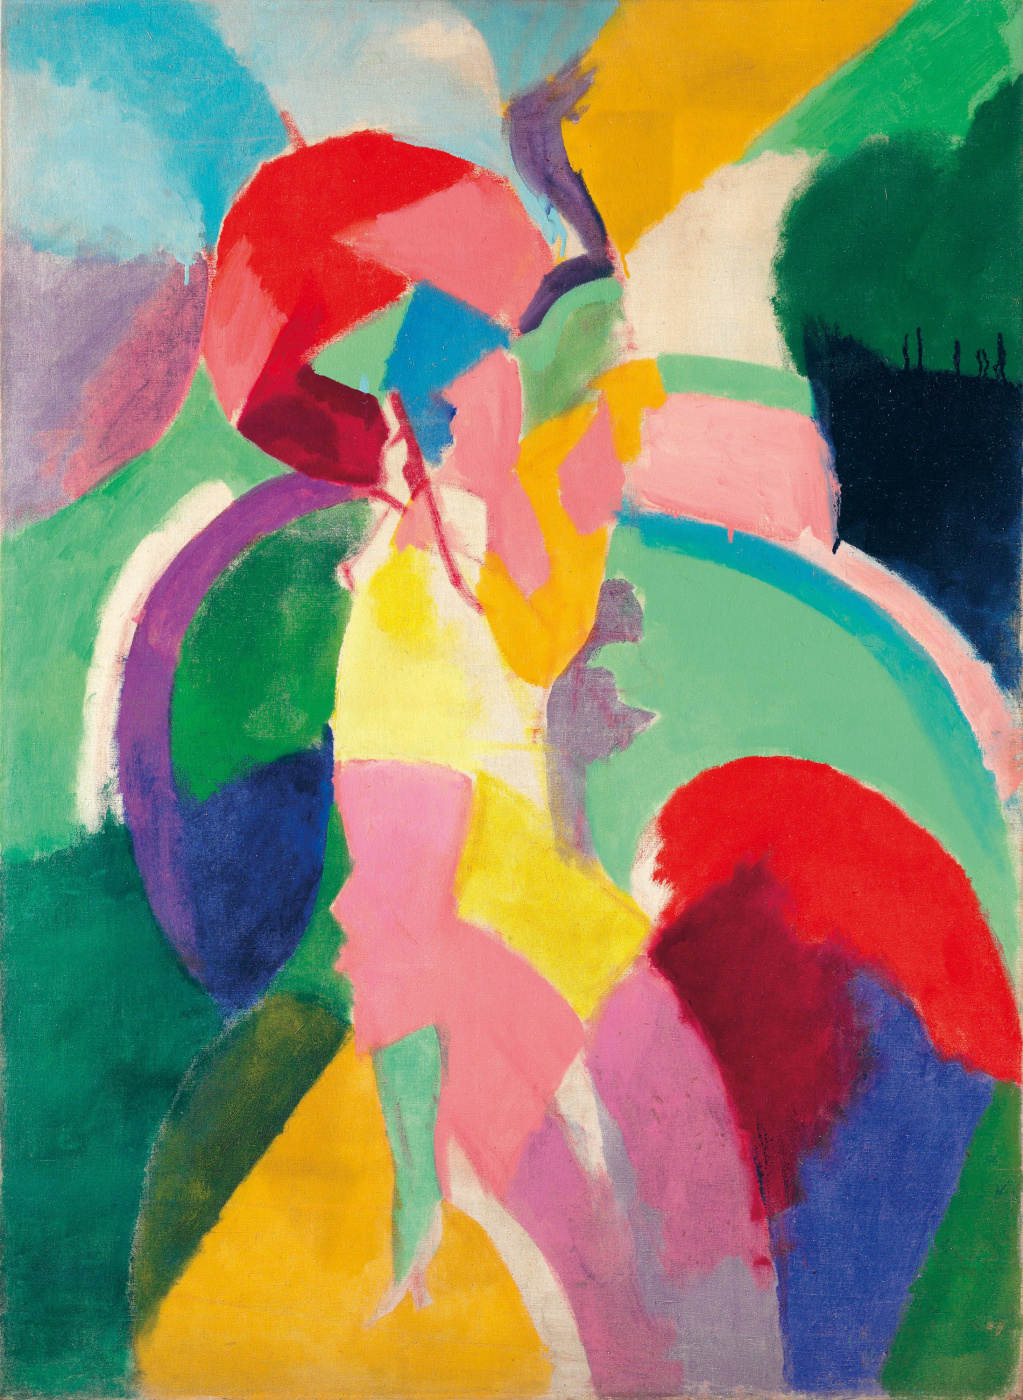 Robert Delaunay. The woman with the umbrella. (Parisienne)